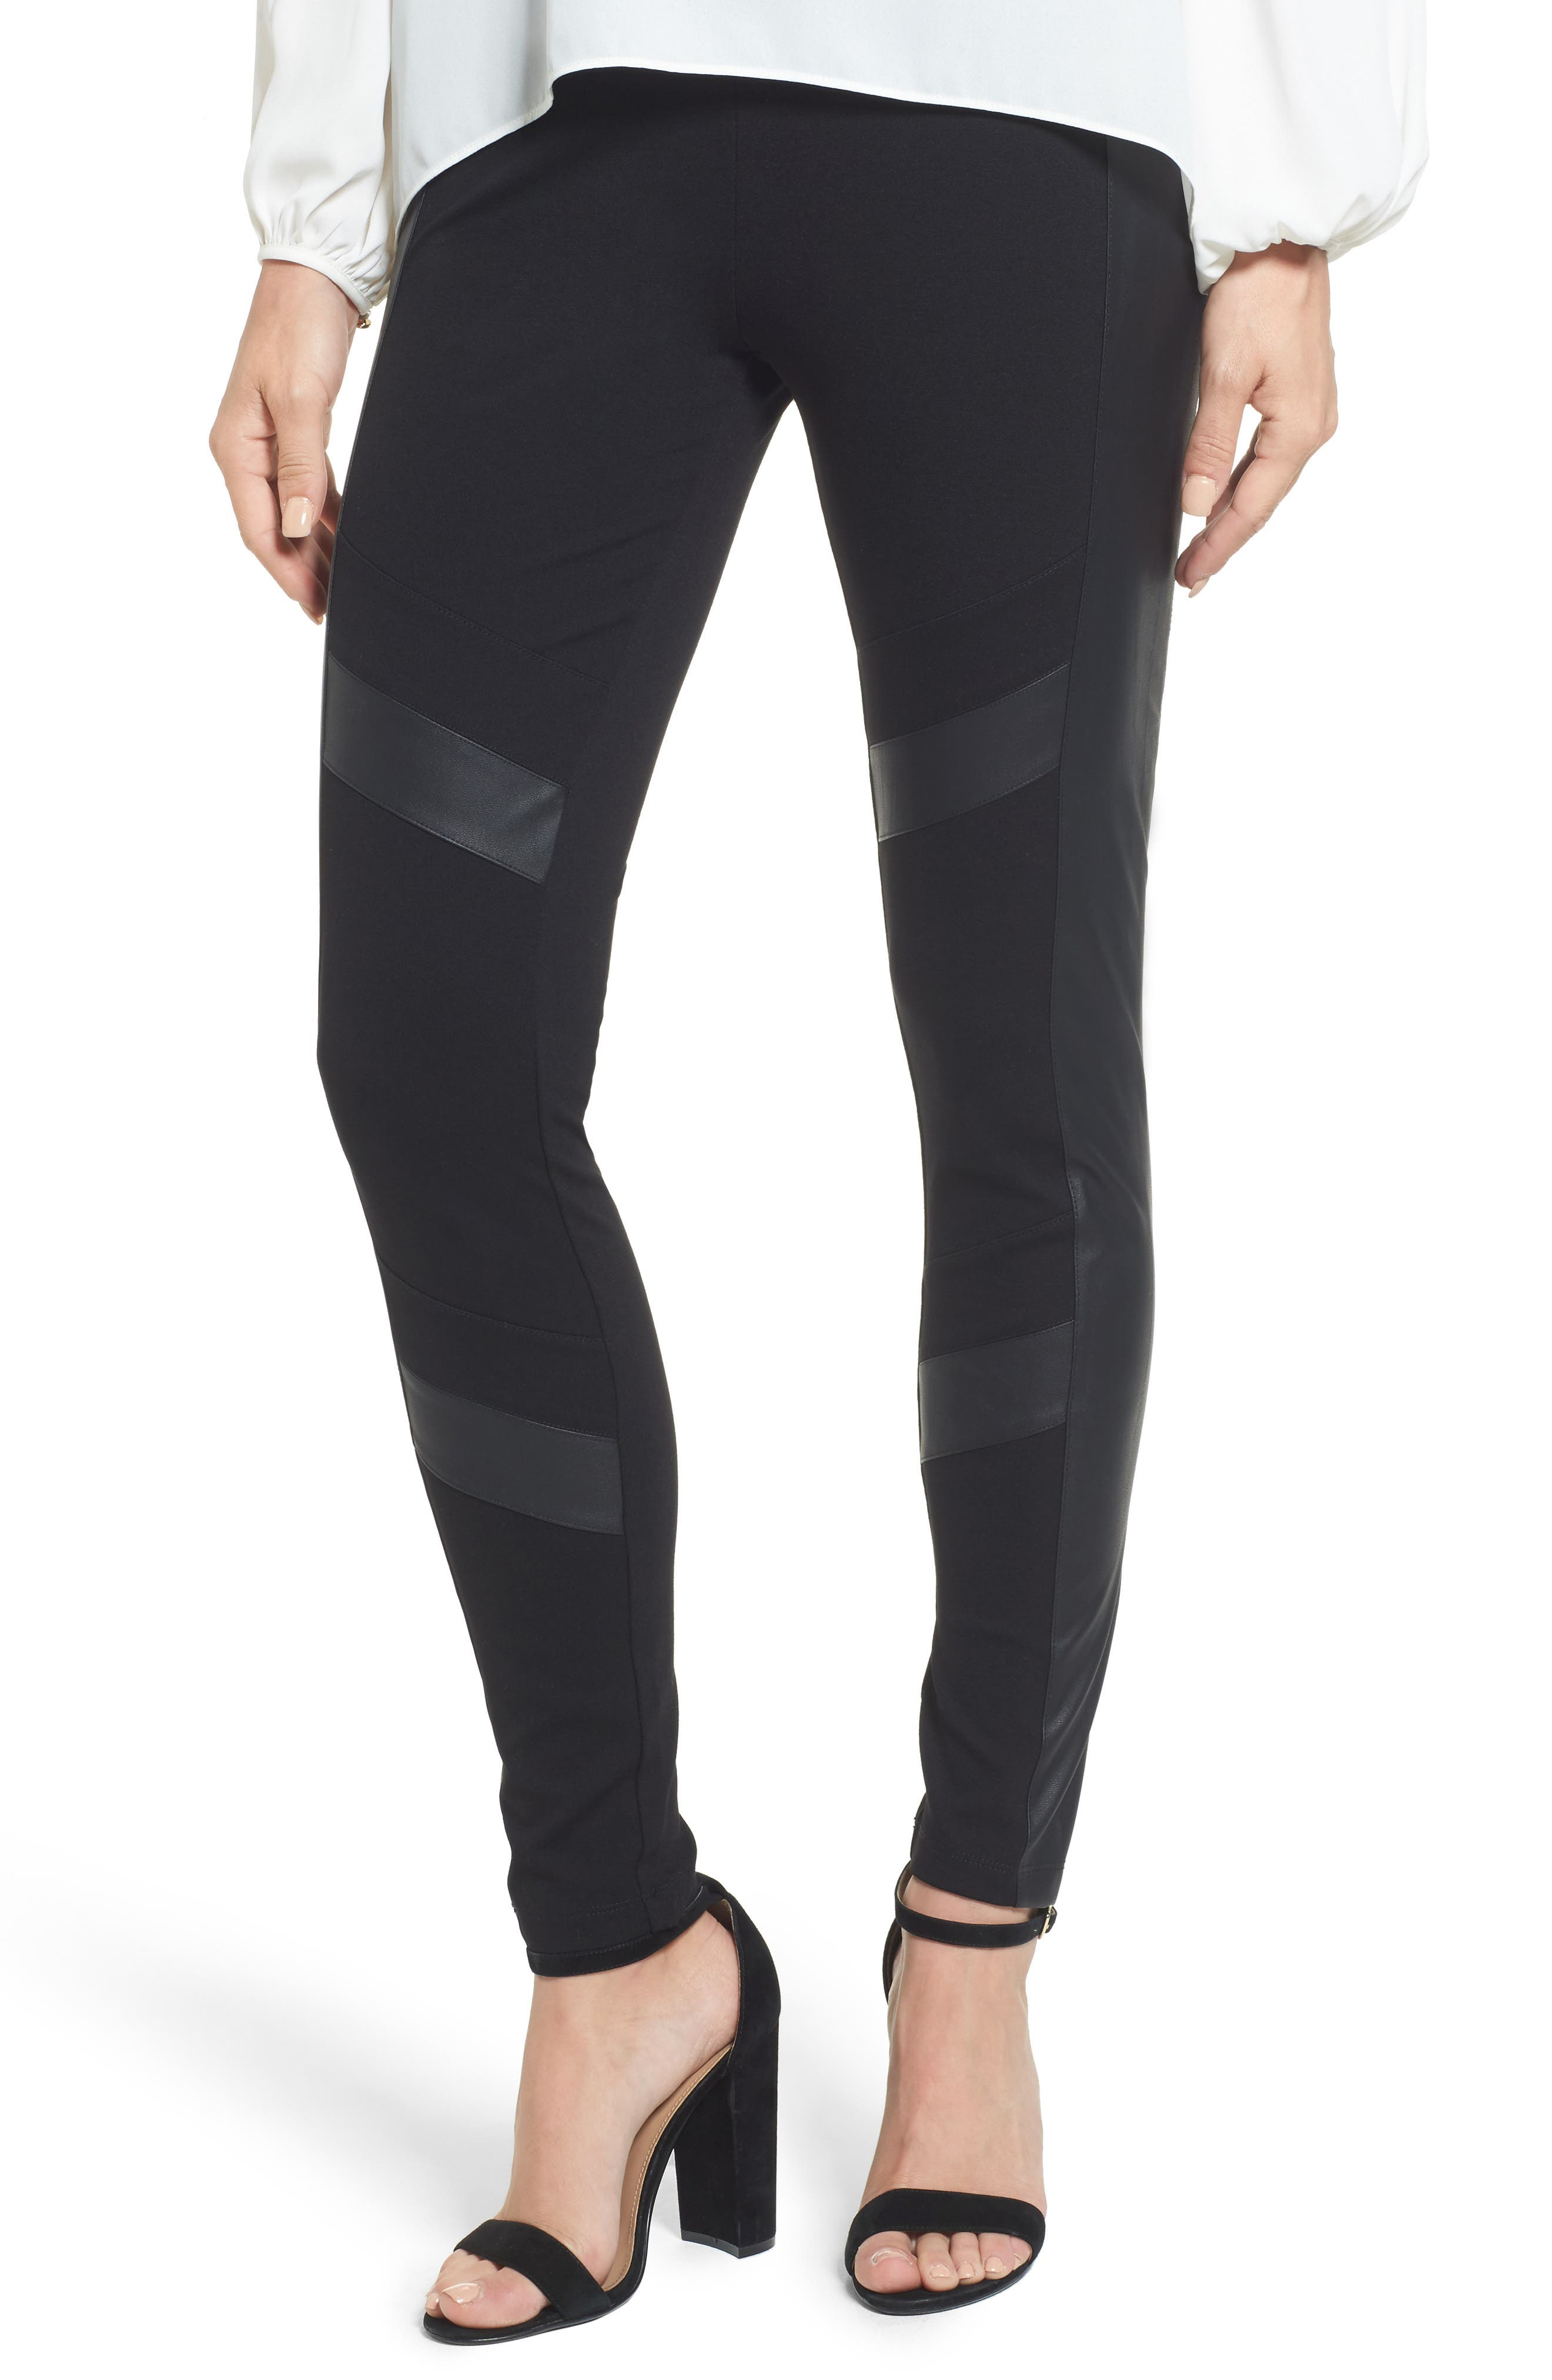 Alternate Image 1 Selected - Two by Vince Camuto Faux Leather Chevron Panel Ponte Leggings